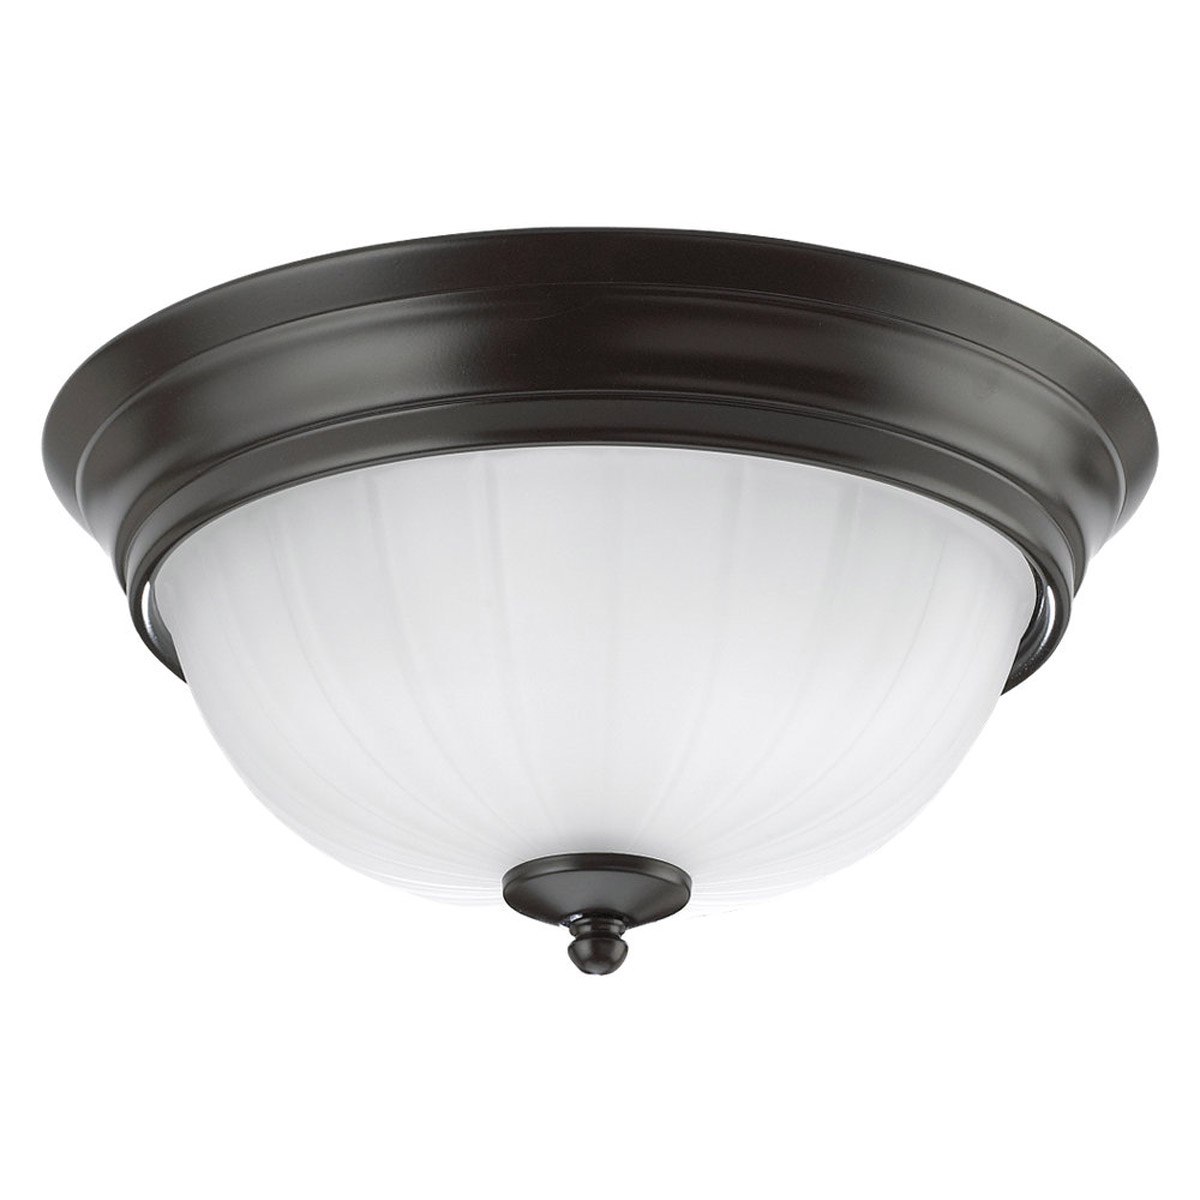 Sea Gull Lighting Floyd 1 Light Flush Mount in Heirloom Bronze 79504BLE-782 photo